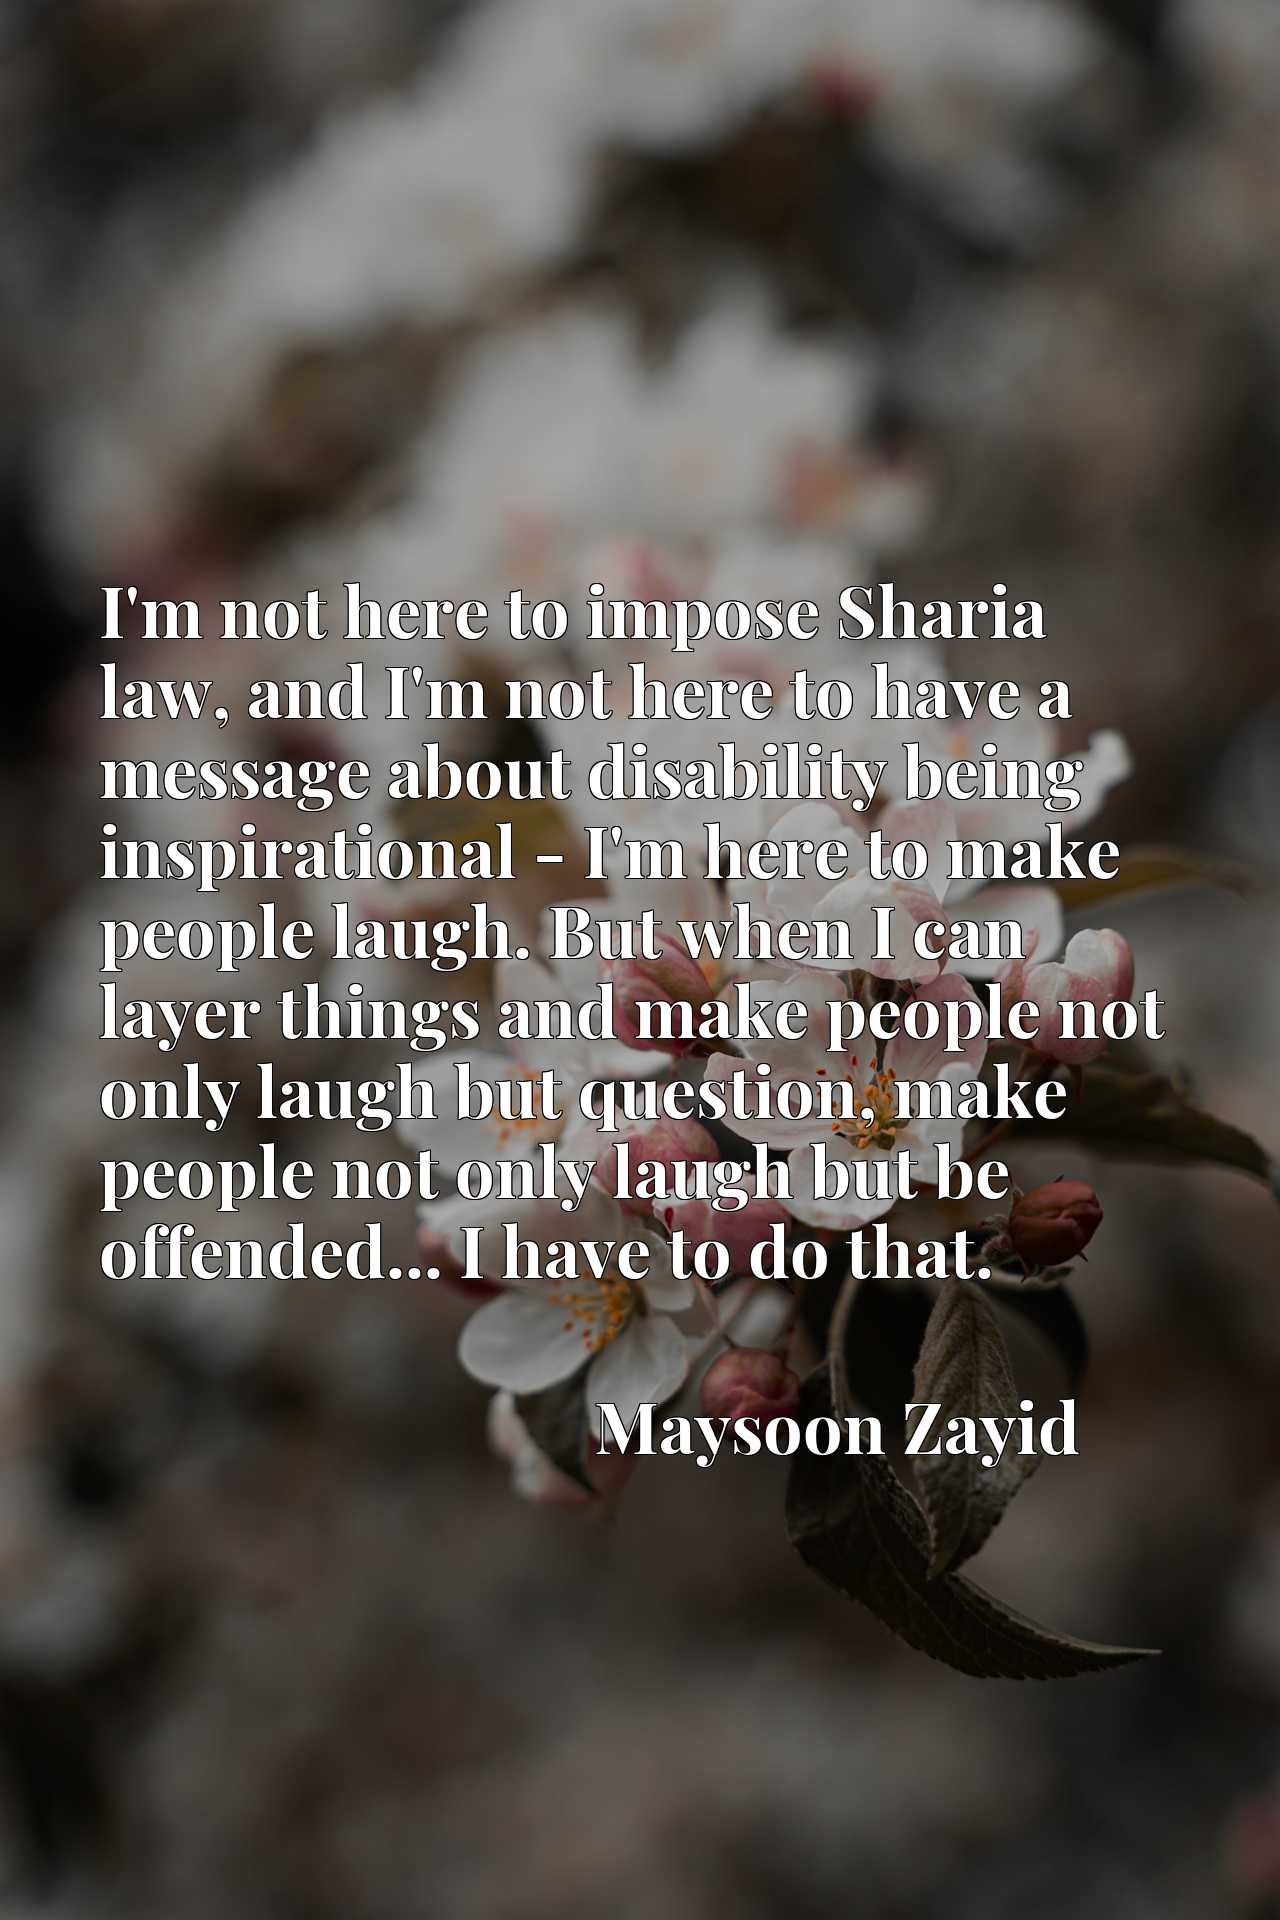 I'm not here to impose Sharia law, and I'm not here to have a message about disability being inspirational - I'm here to make people laugh. But when I can layer things and make people not only laugh but question, make people not only laugh but be offended... I have to do that.